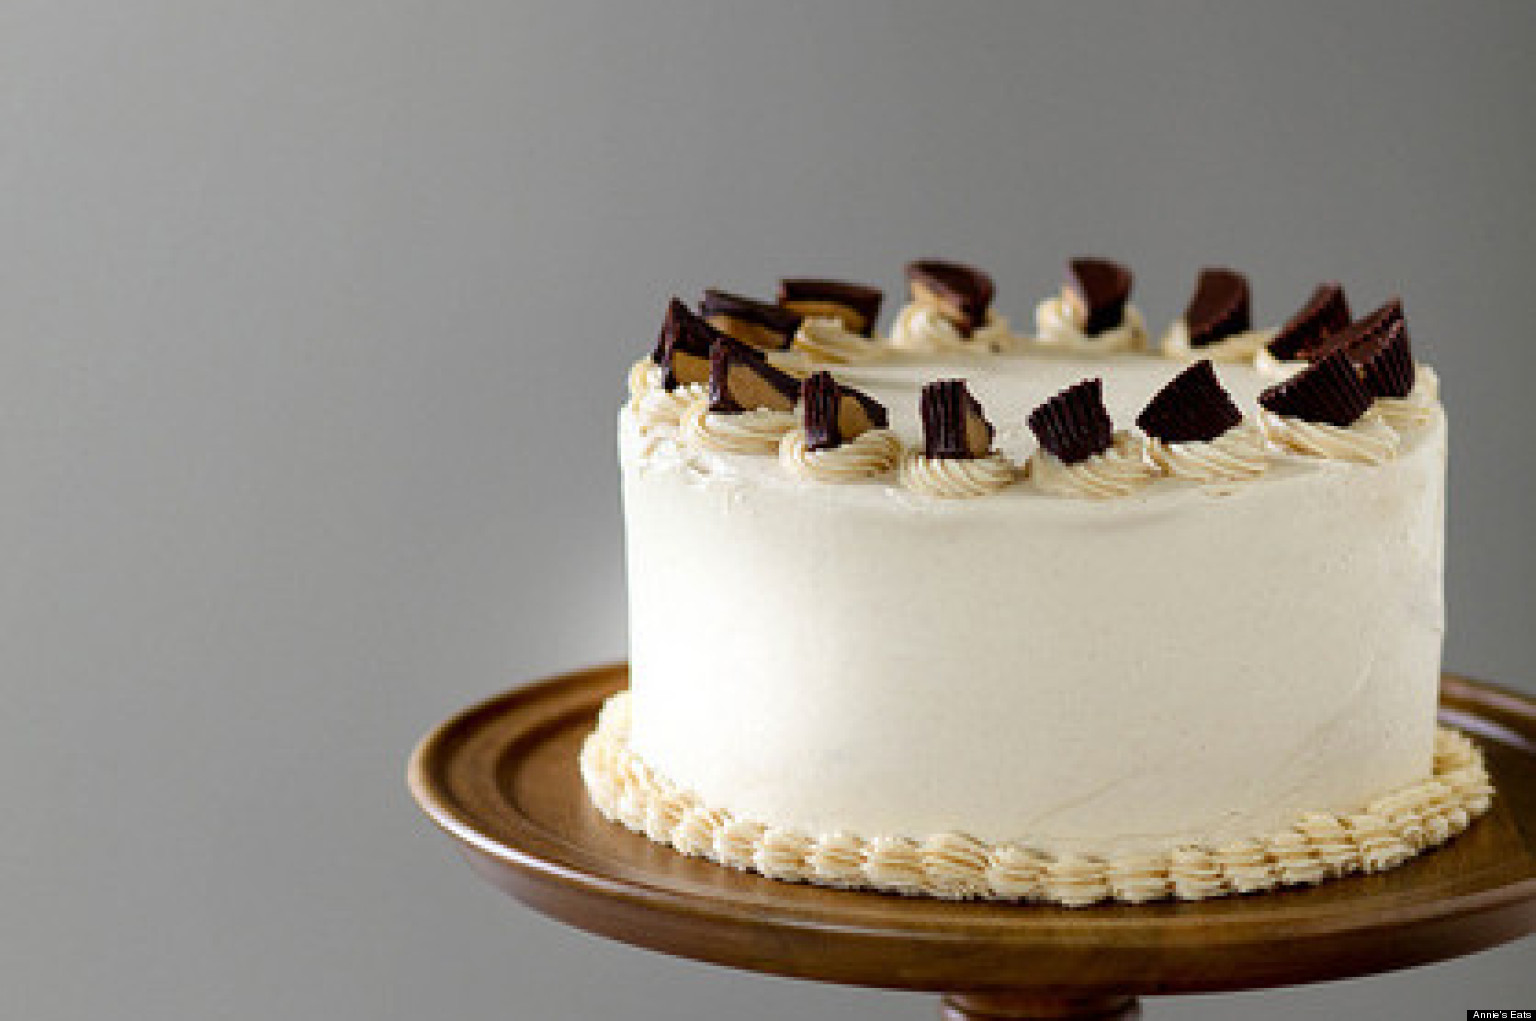 Cake Recipes In Pictures: Cake Recipes: One For Every Occasion (PHOTOS)